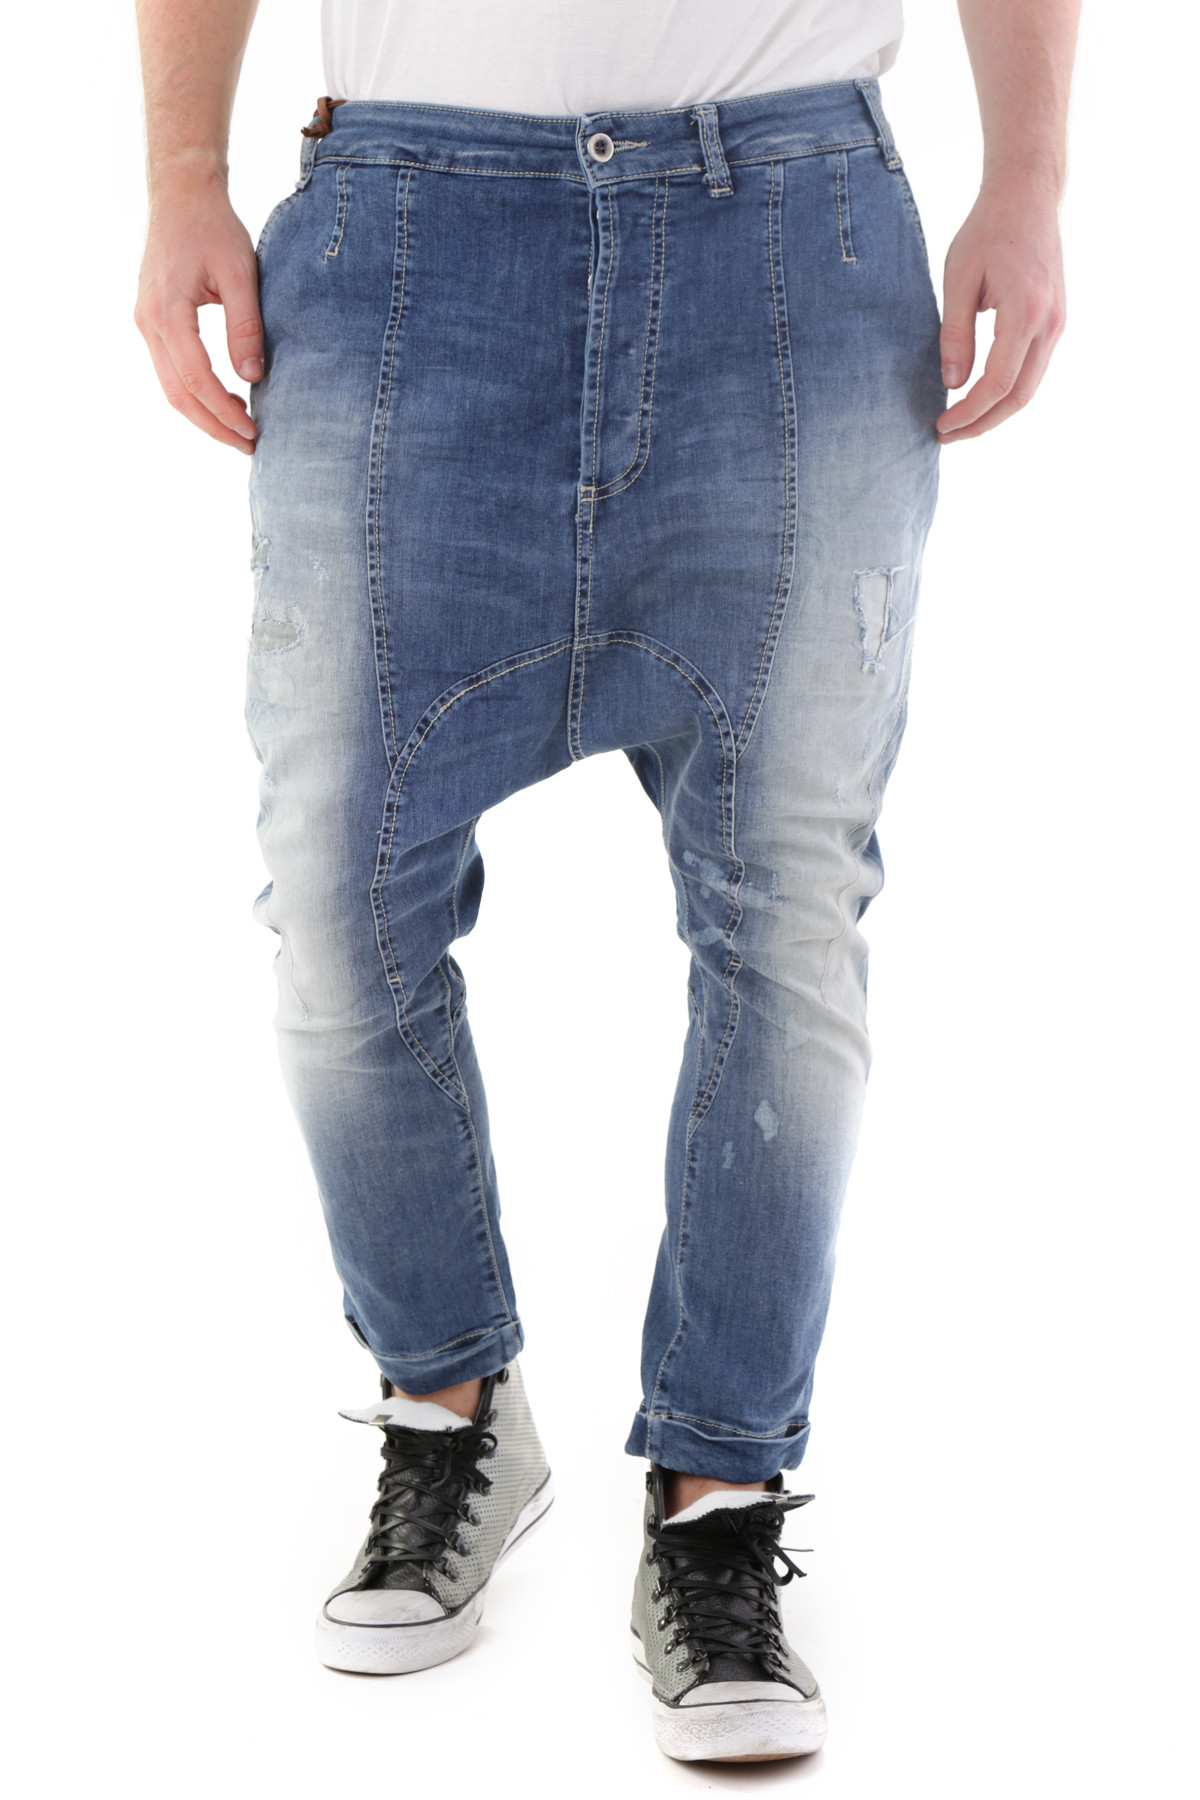 Free Shipping Extremely Quality Free Shipping Outlet Man Jeans Absolut Joy - 29 Absolut Joy ts0BbV1Cth